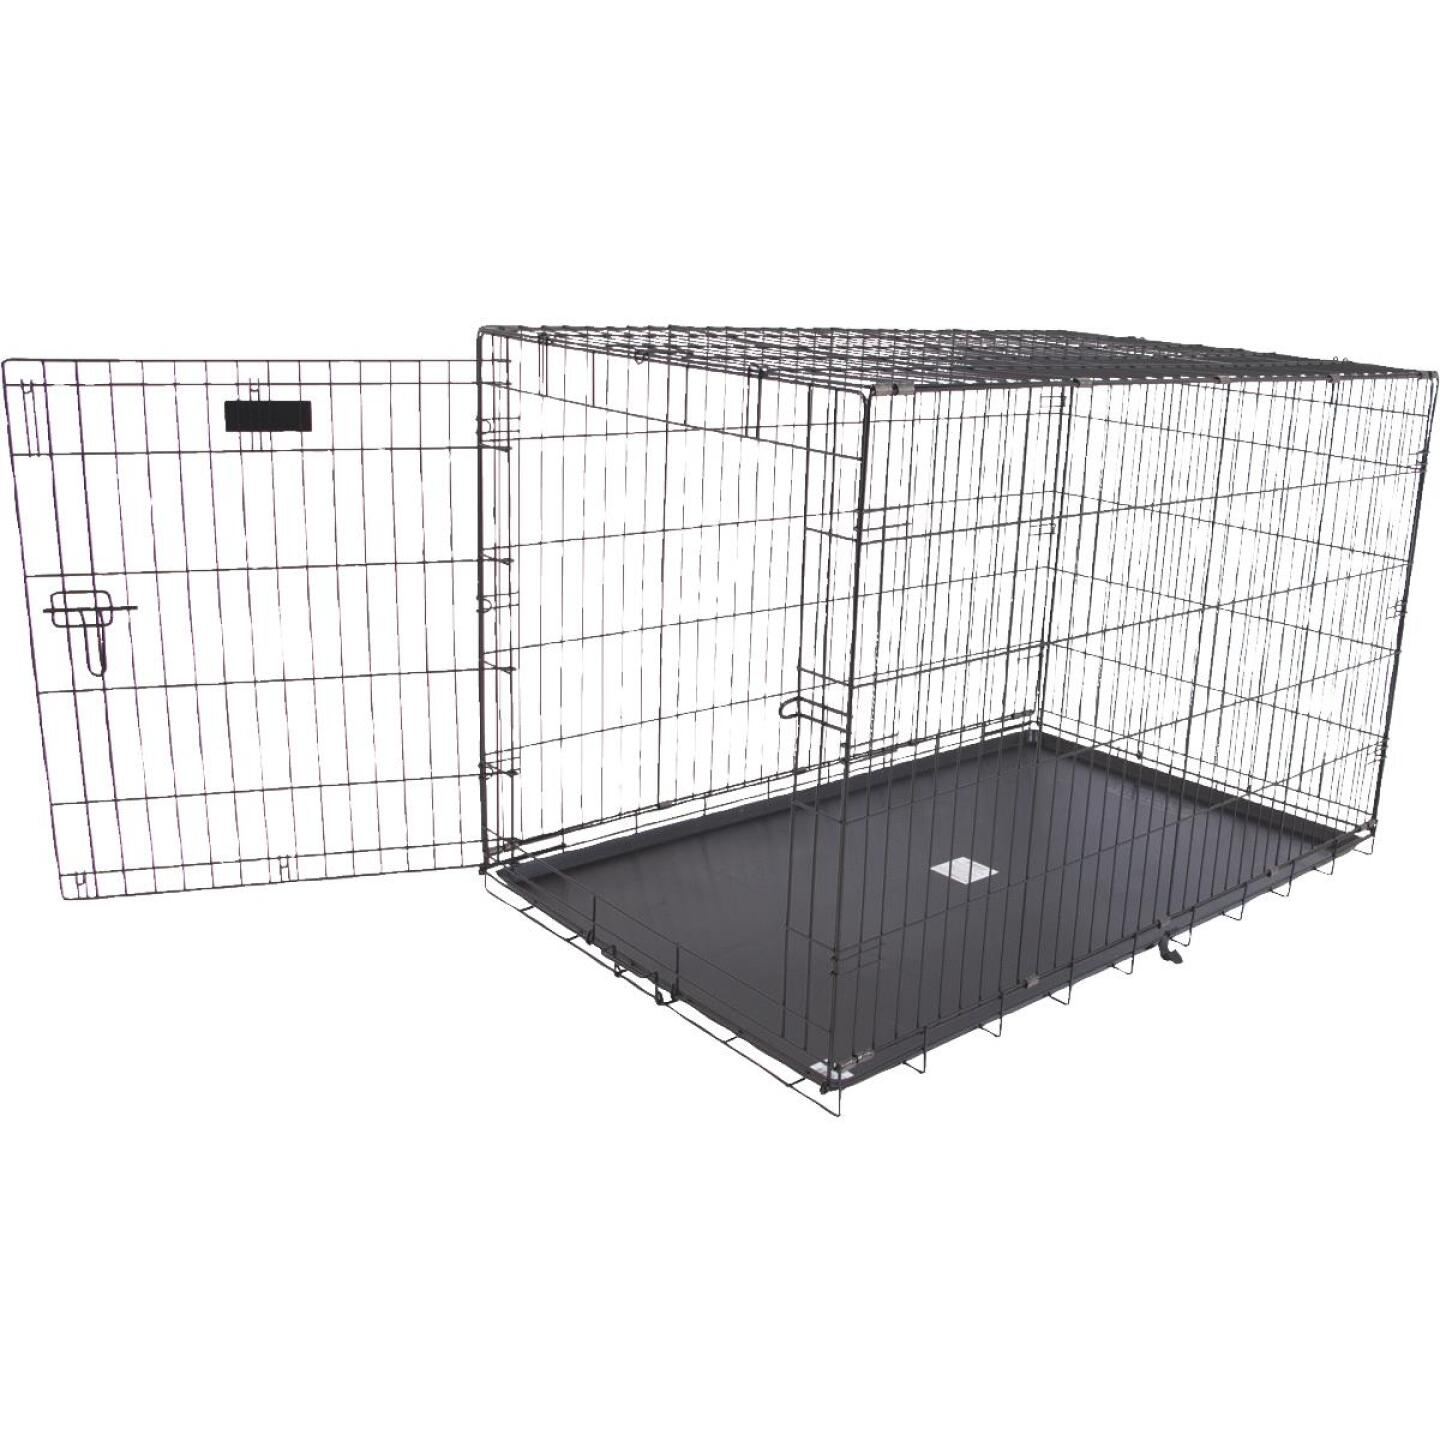 Petmate Aspen Pet 29.3 In. W. x 31 In. H. x 43.4 In. L. Heavy-Gauge Wire Indoor Training Dog Crate Image 1